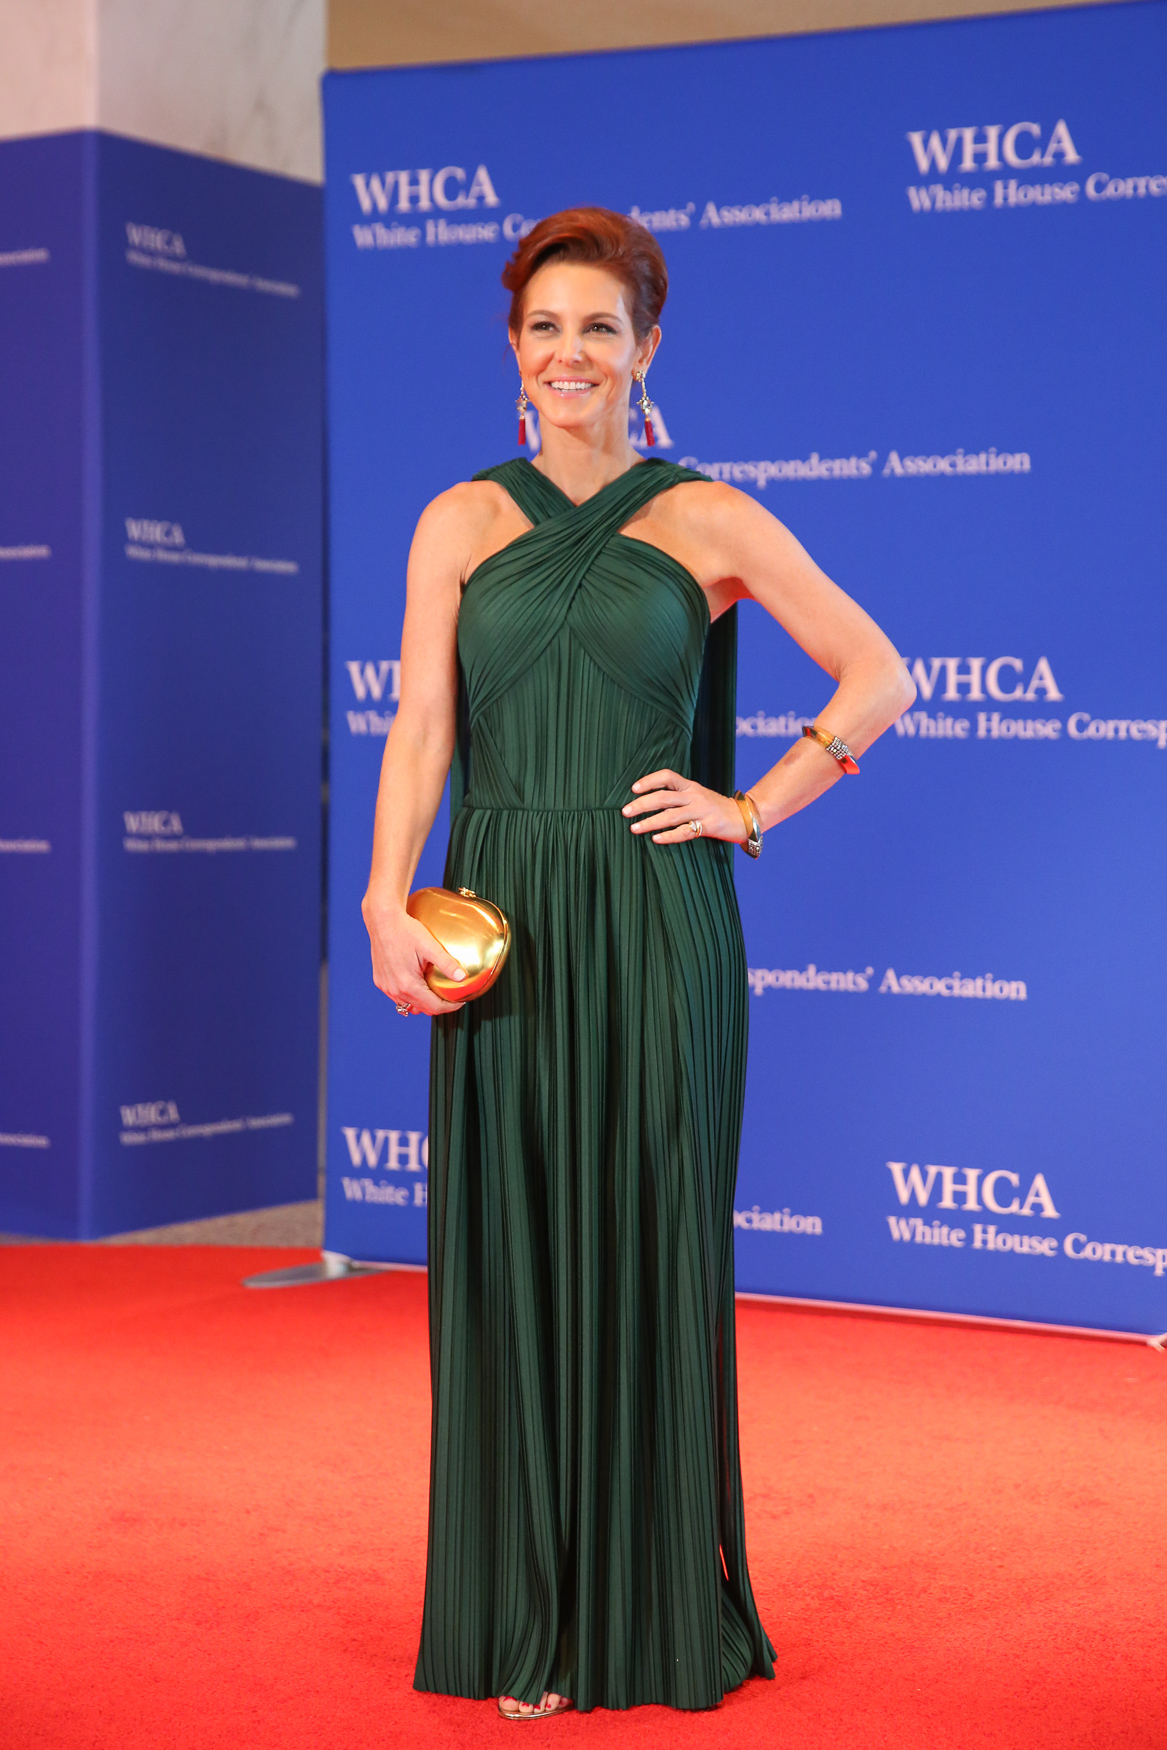 This gorgeous green frock was eye-catching to say the least!{ }(Amanda Andrade-Rhoades/DC Refined)